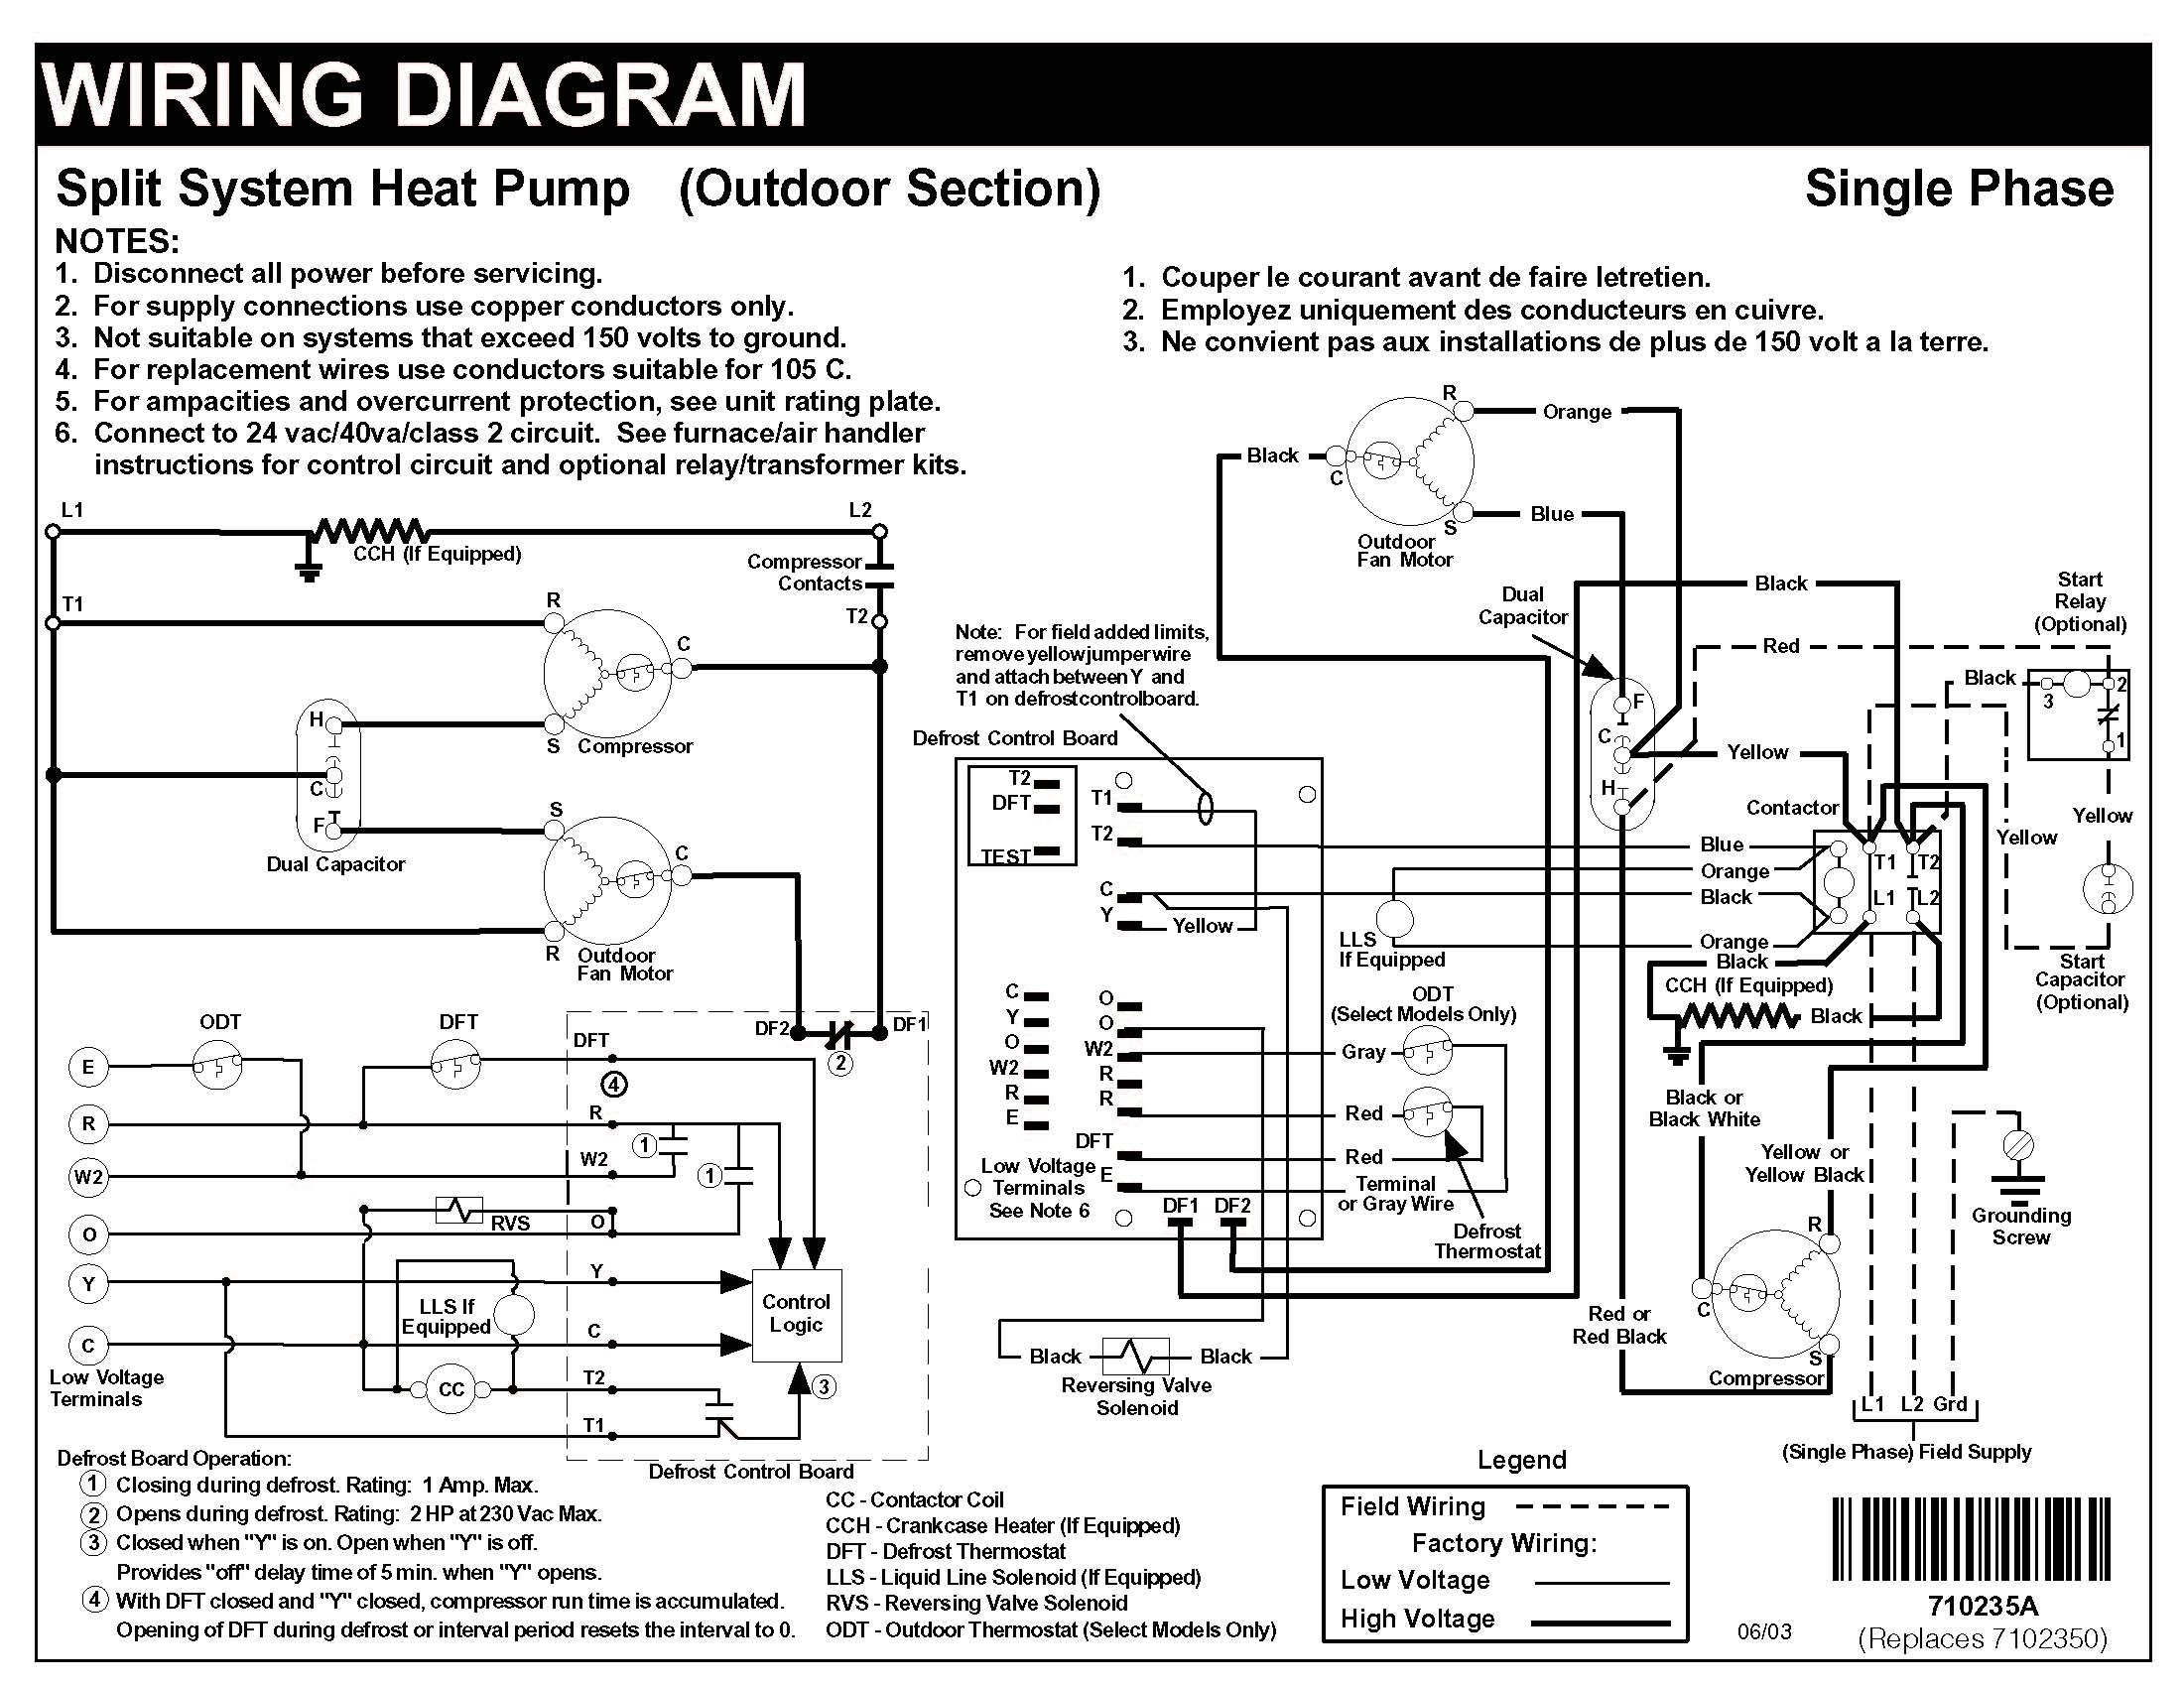 e08d295e6be2ee8be1bef44ac29add79 trane heat pump wiring diagram efcaviation com Trane Thermostat Wiring at edmiracle.co